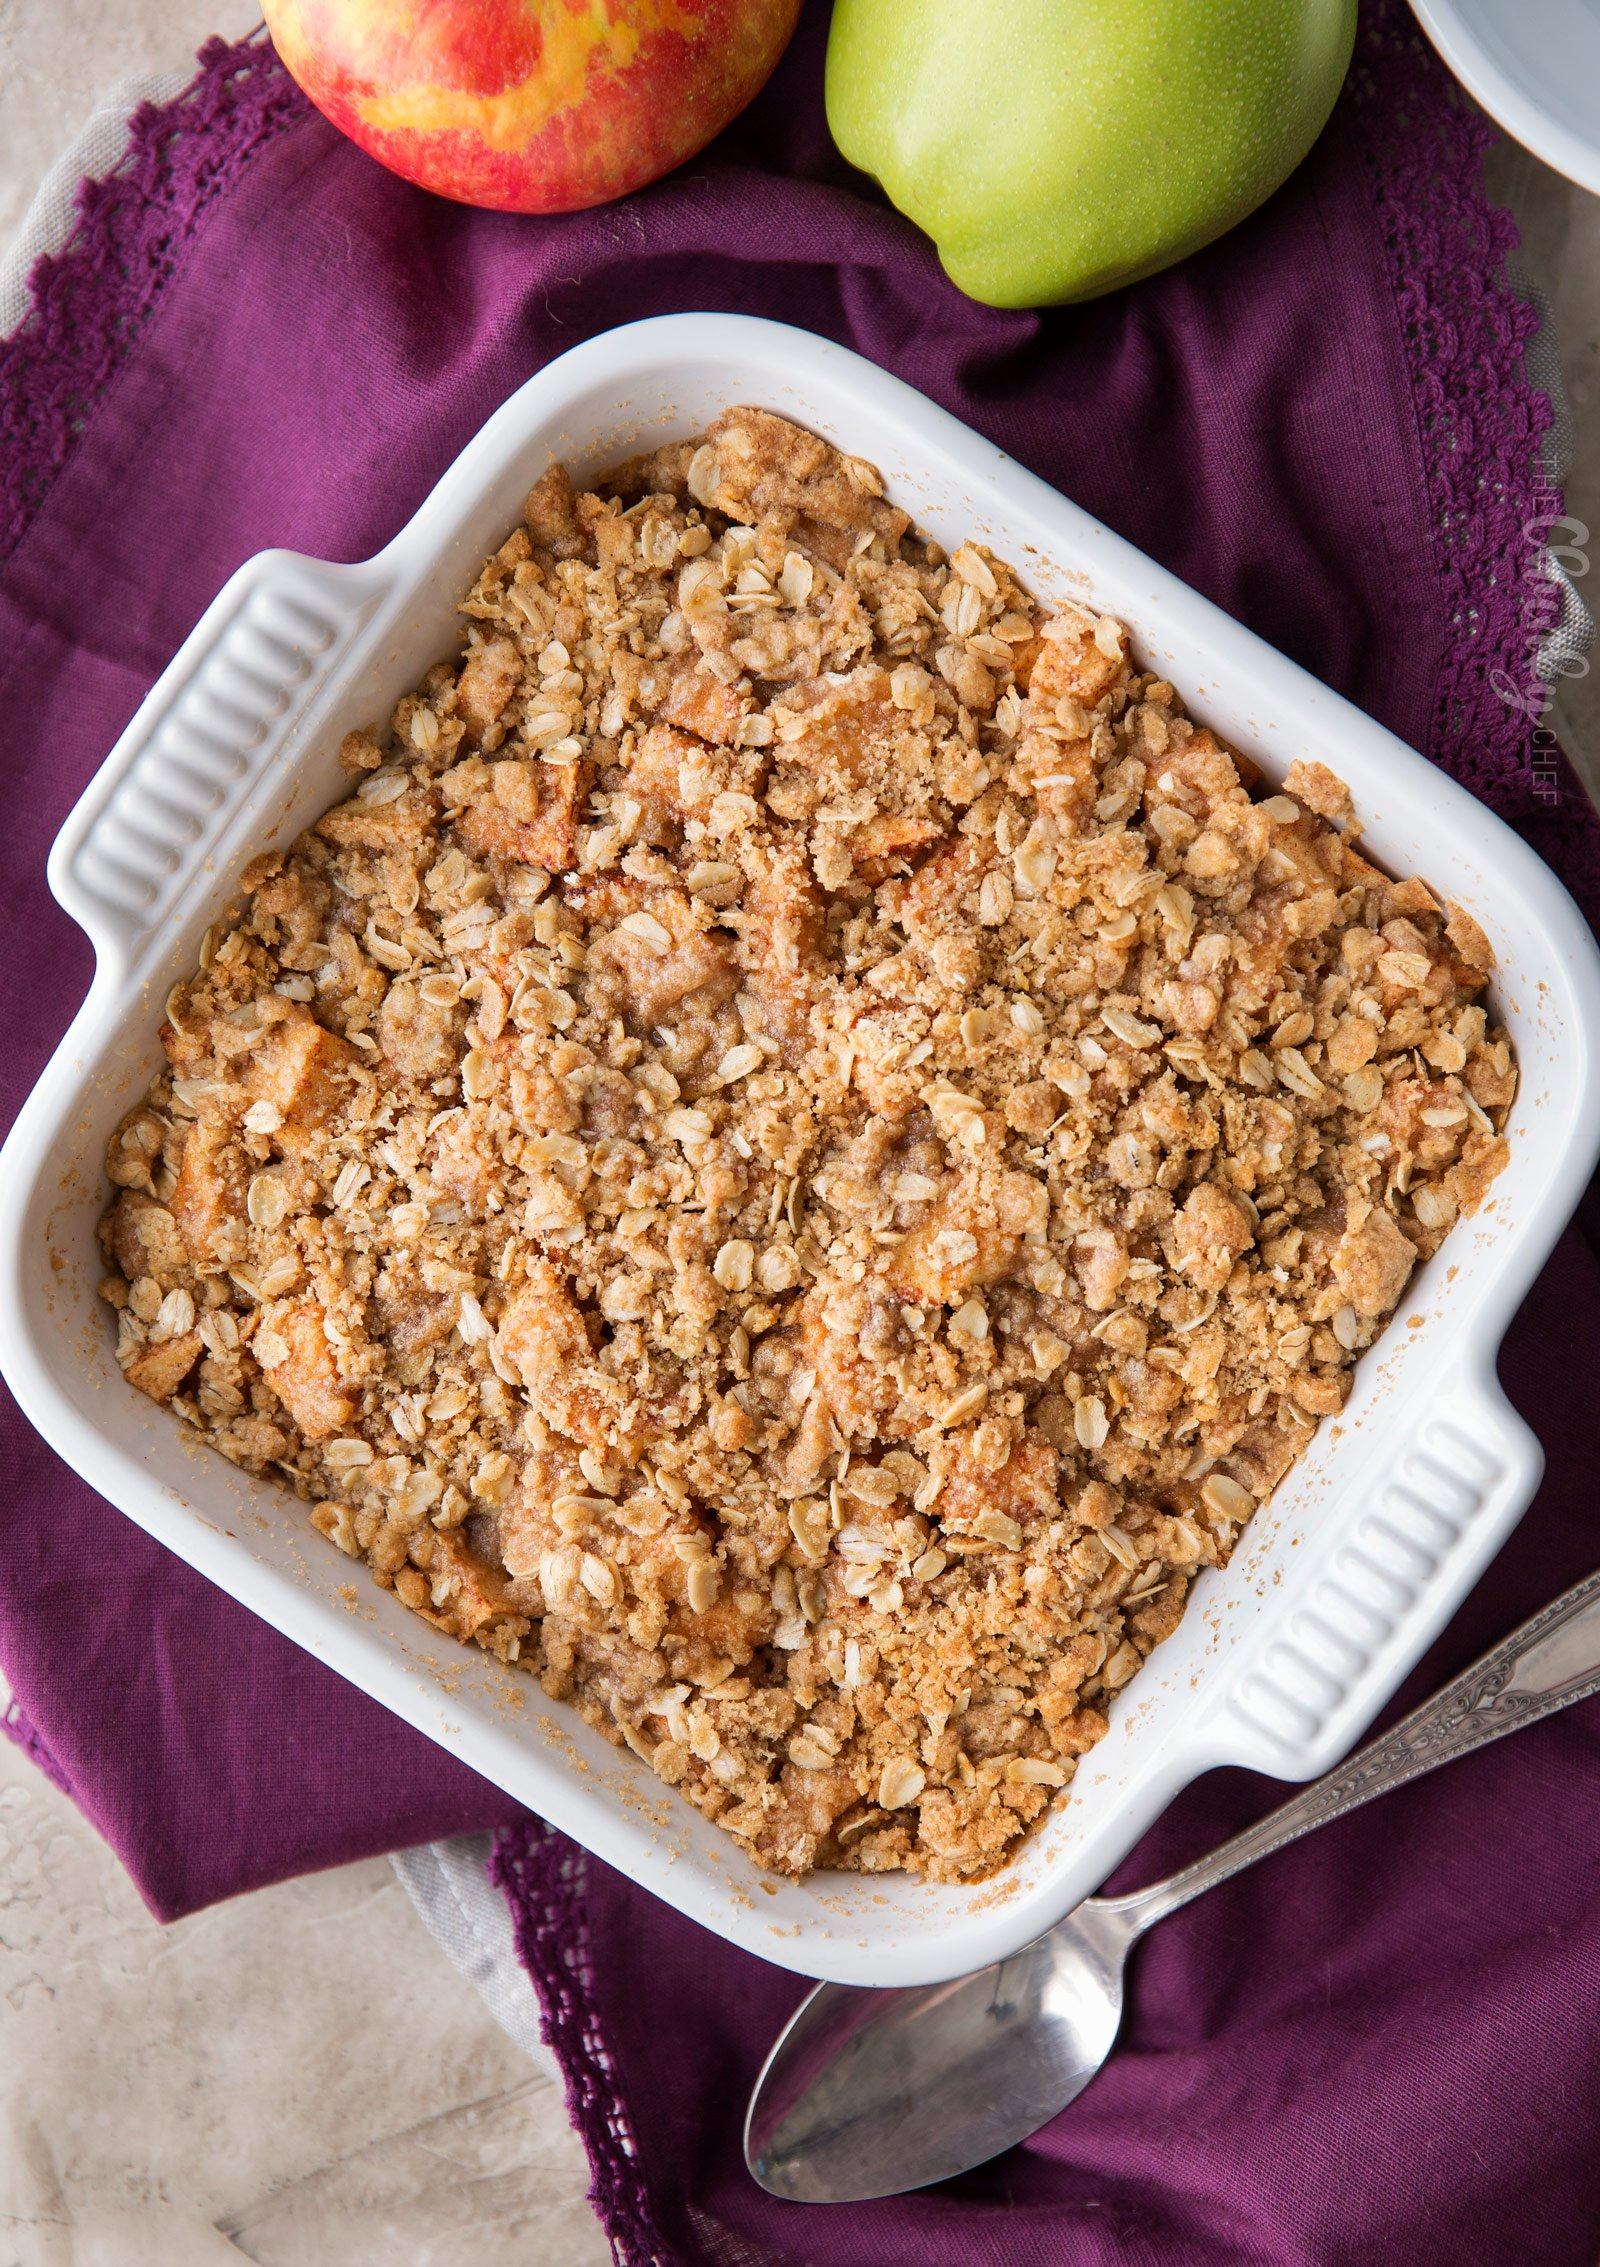 Overheat picture of apple crisp in baking dish